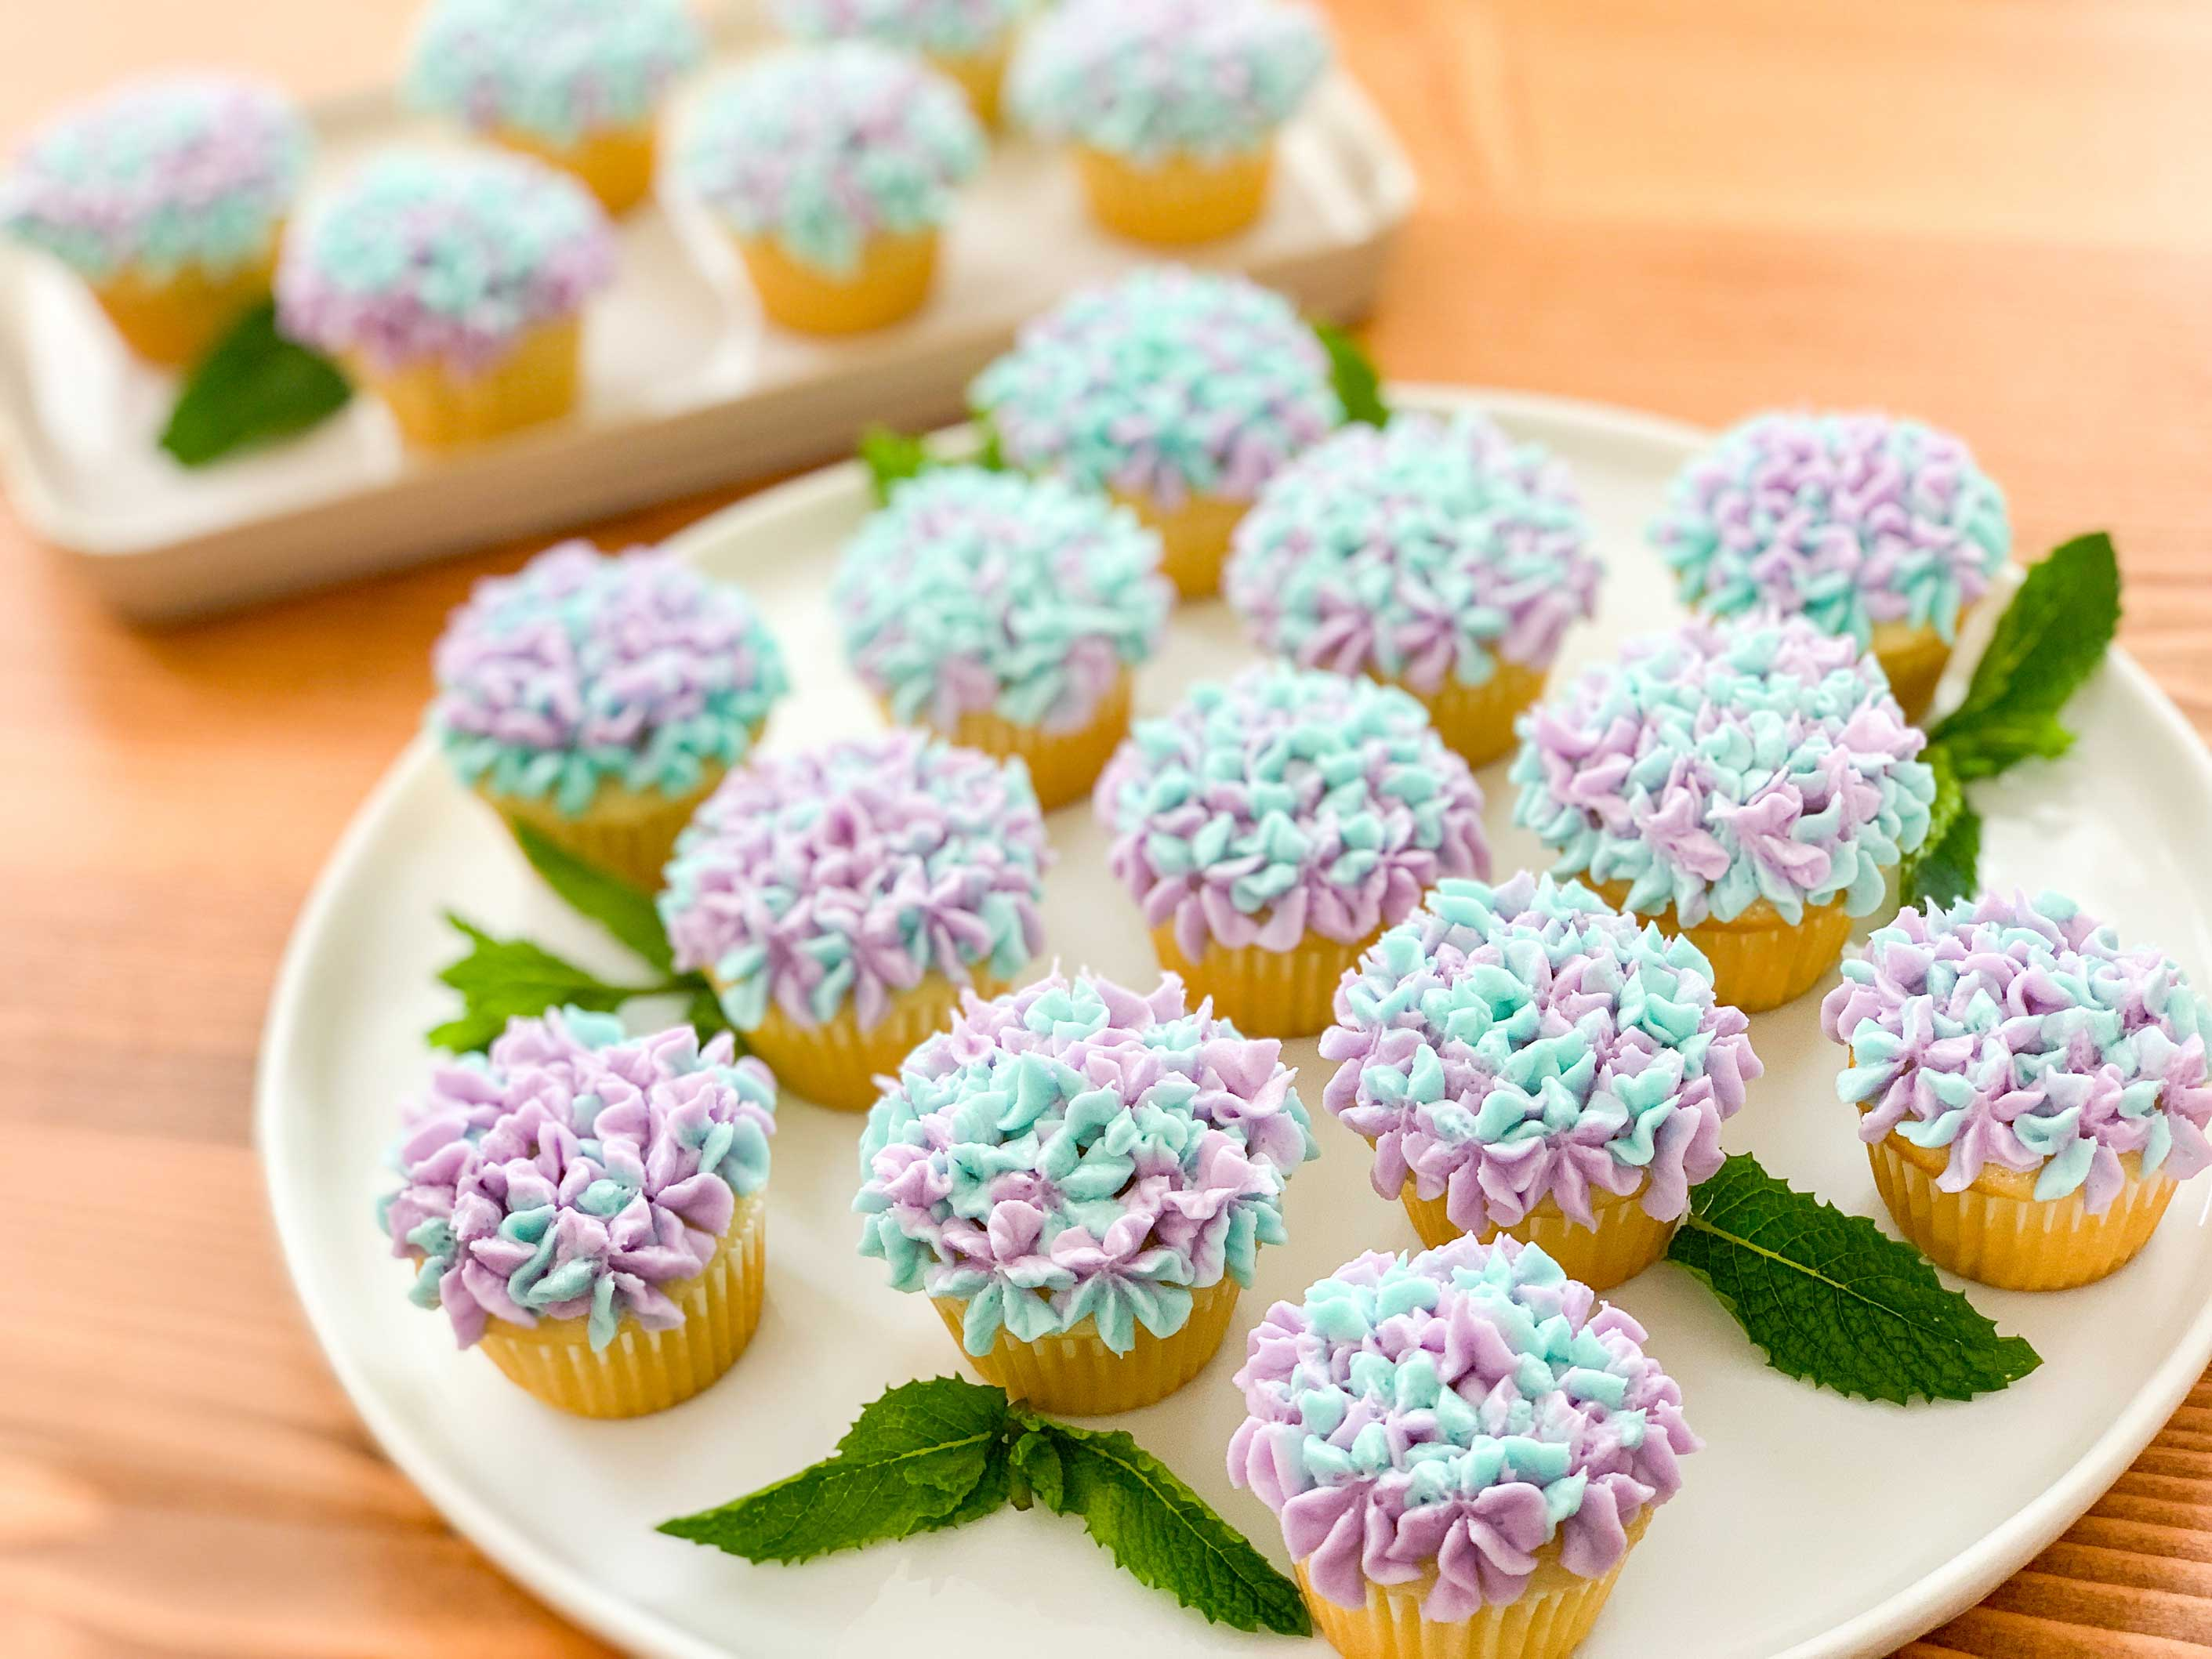 Mini hydrangea cupcakes on a round plate, accented with mint leaves